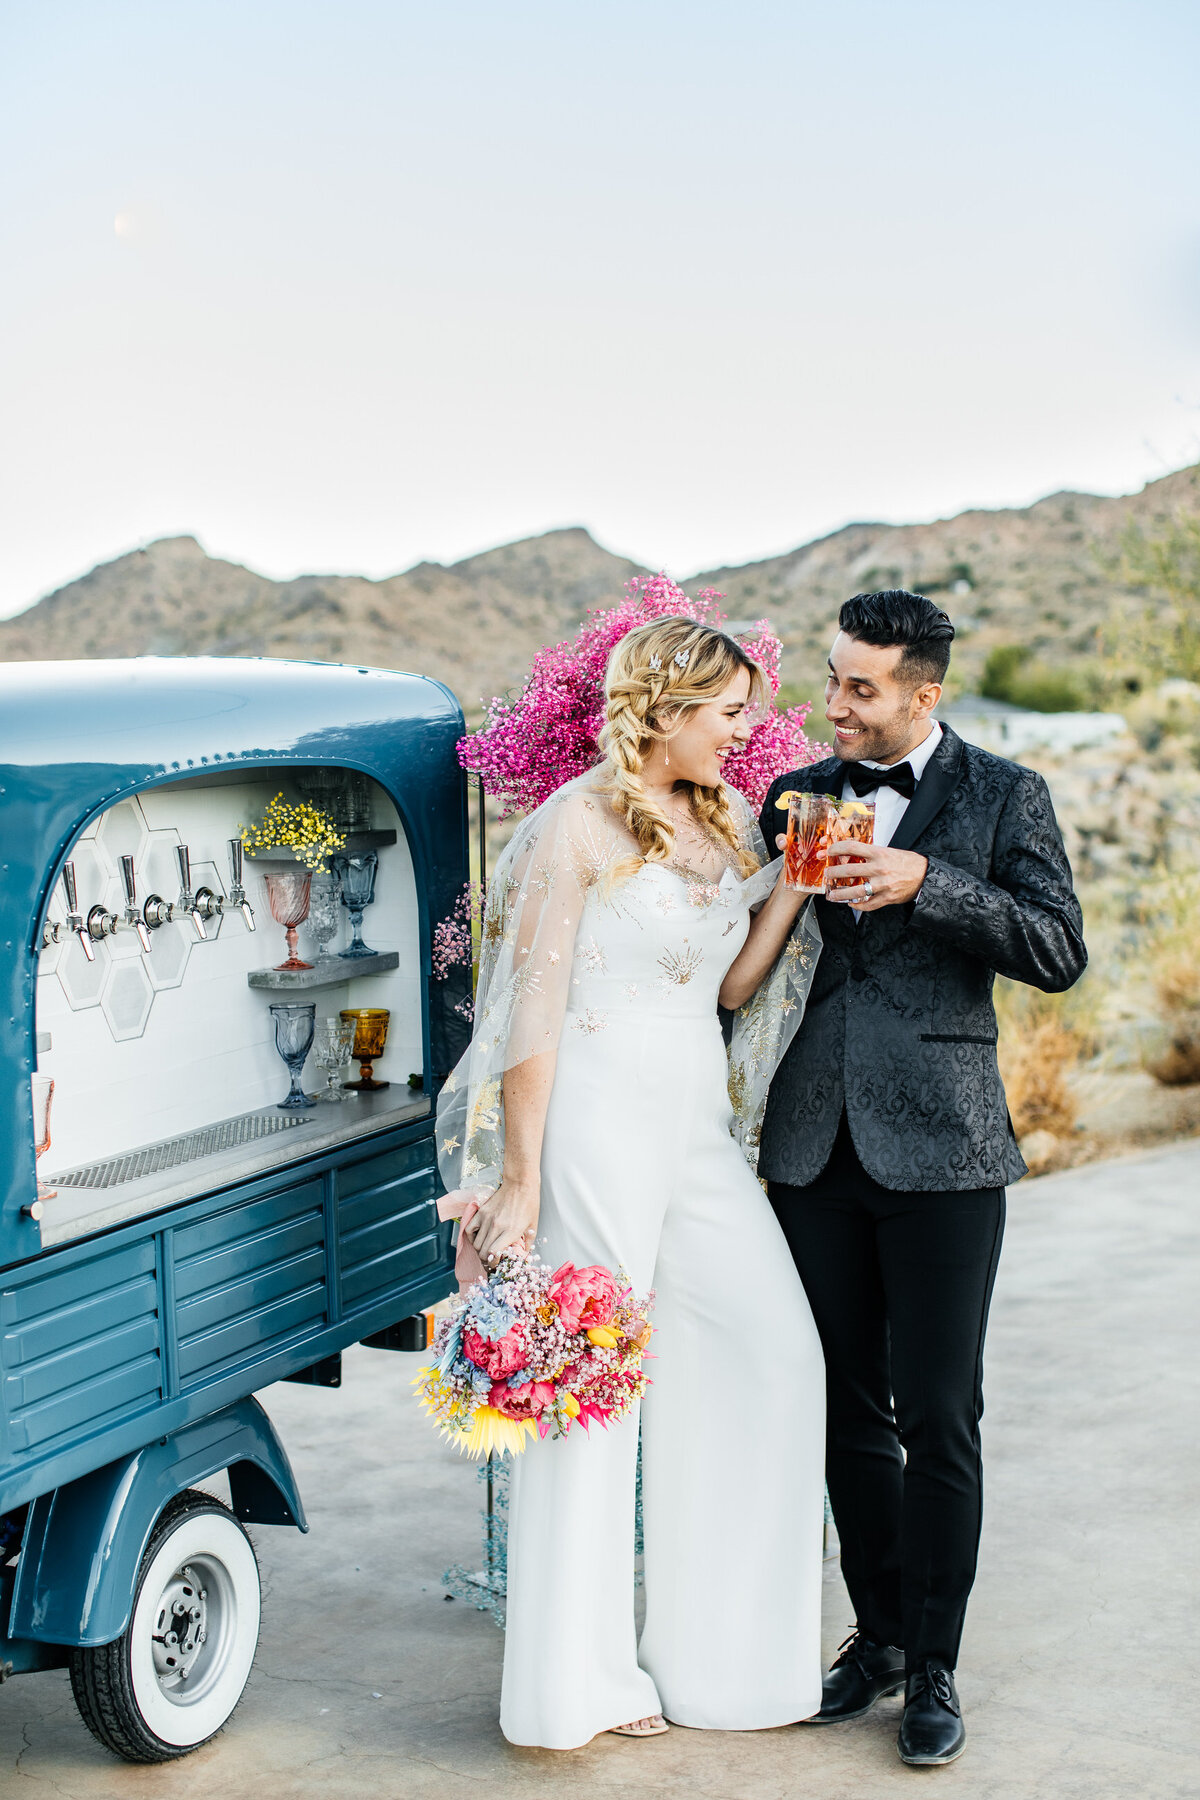 colorful-joshua-tree-elopement-inspiration-joshua-tree-wedding-photographer-palm-springs-wedding-photographer-erin-marton-photography-48